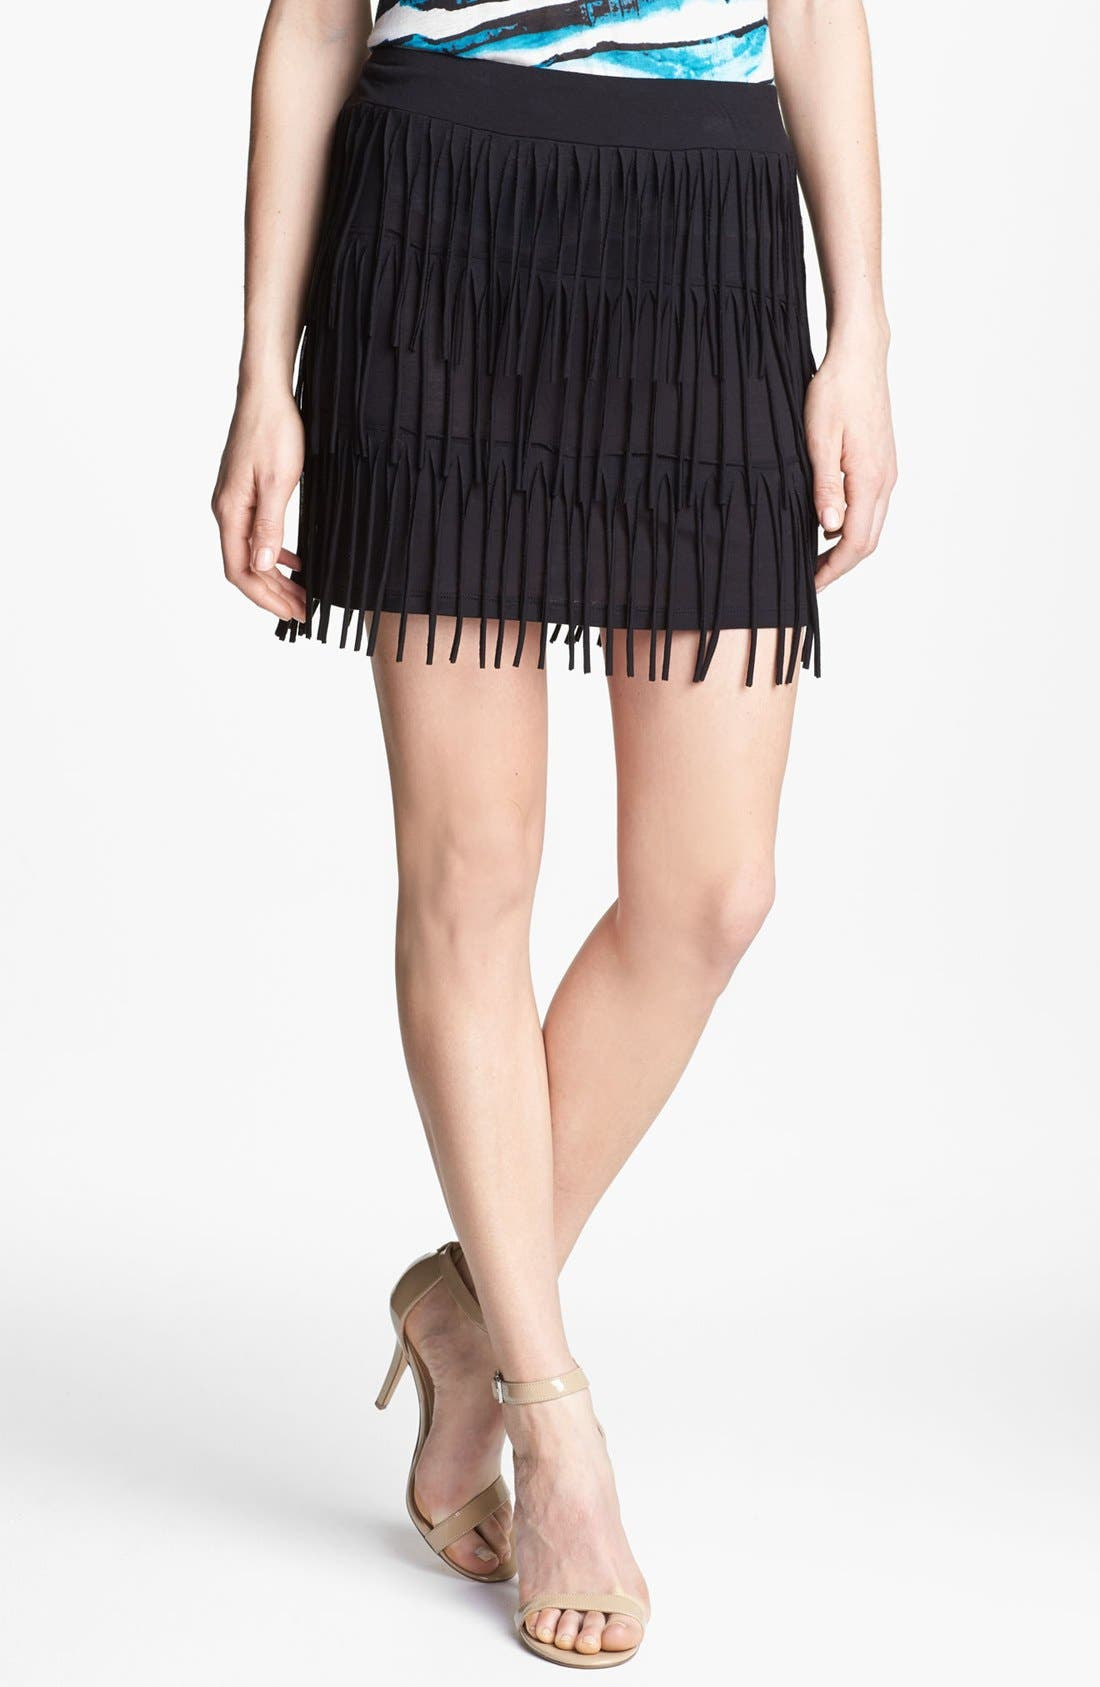 Alternate Image 1 Selected - Kensie Fringe Skirt